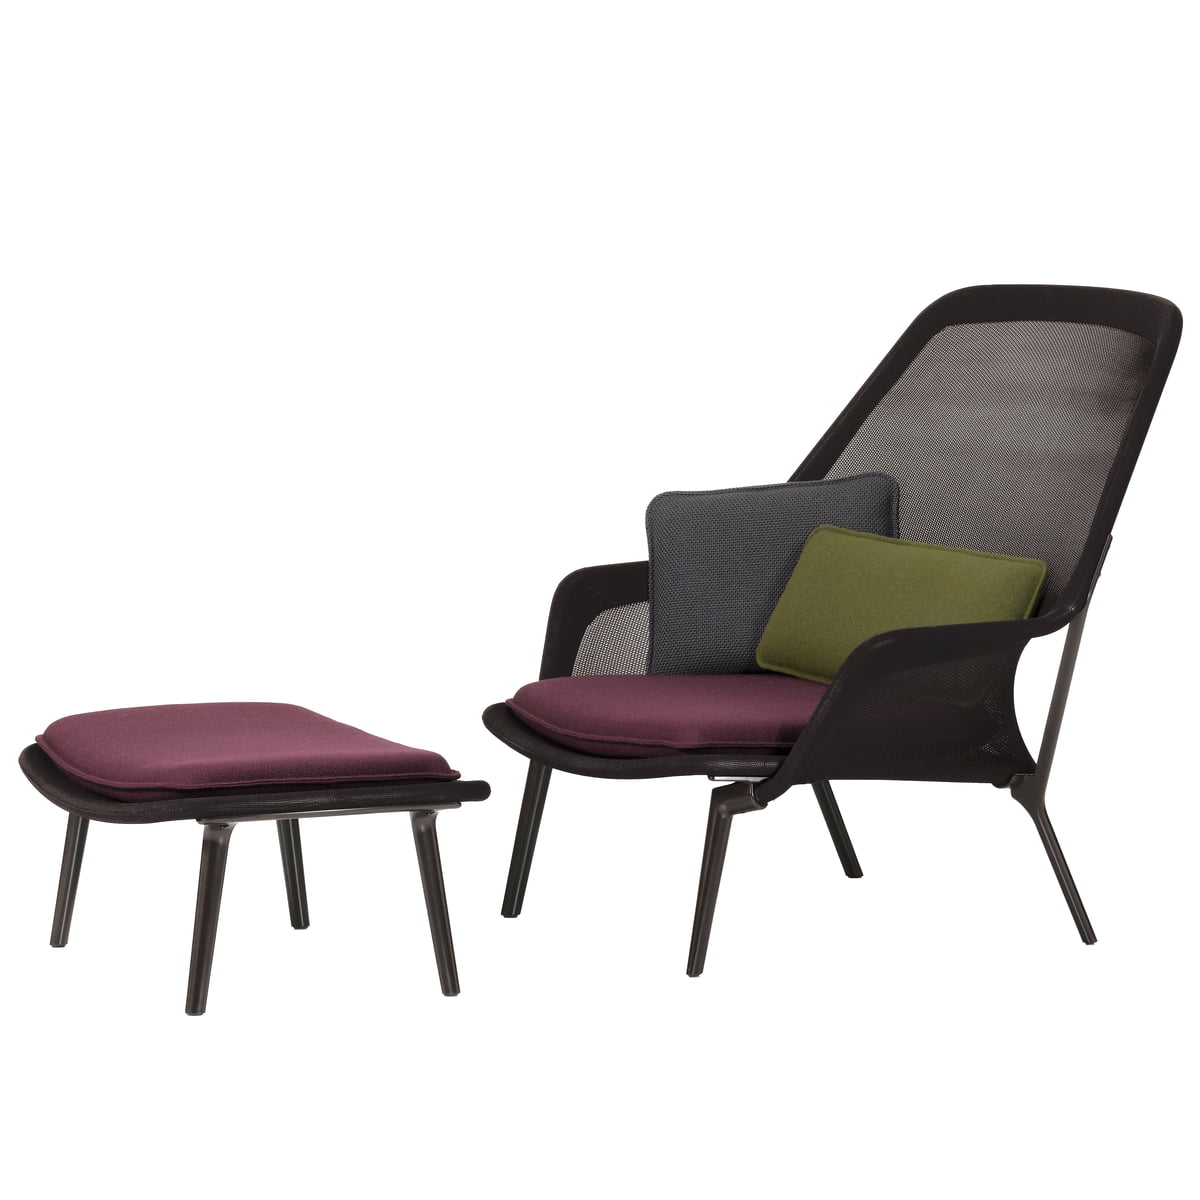 Slow chair ottoman vitra shop for Boutique vitra